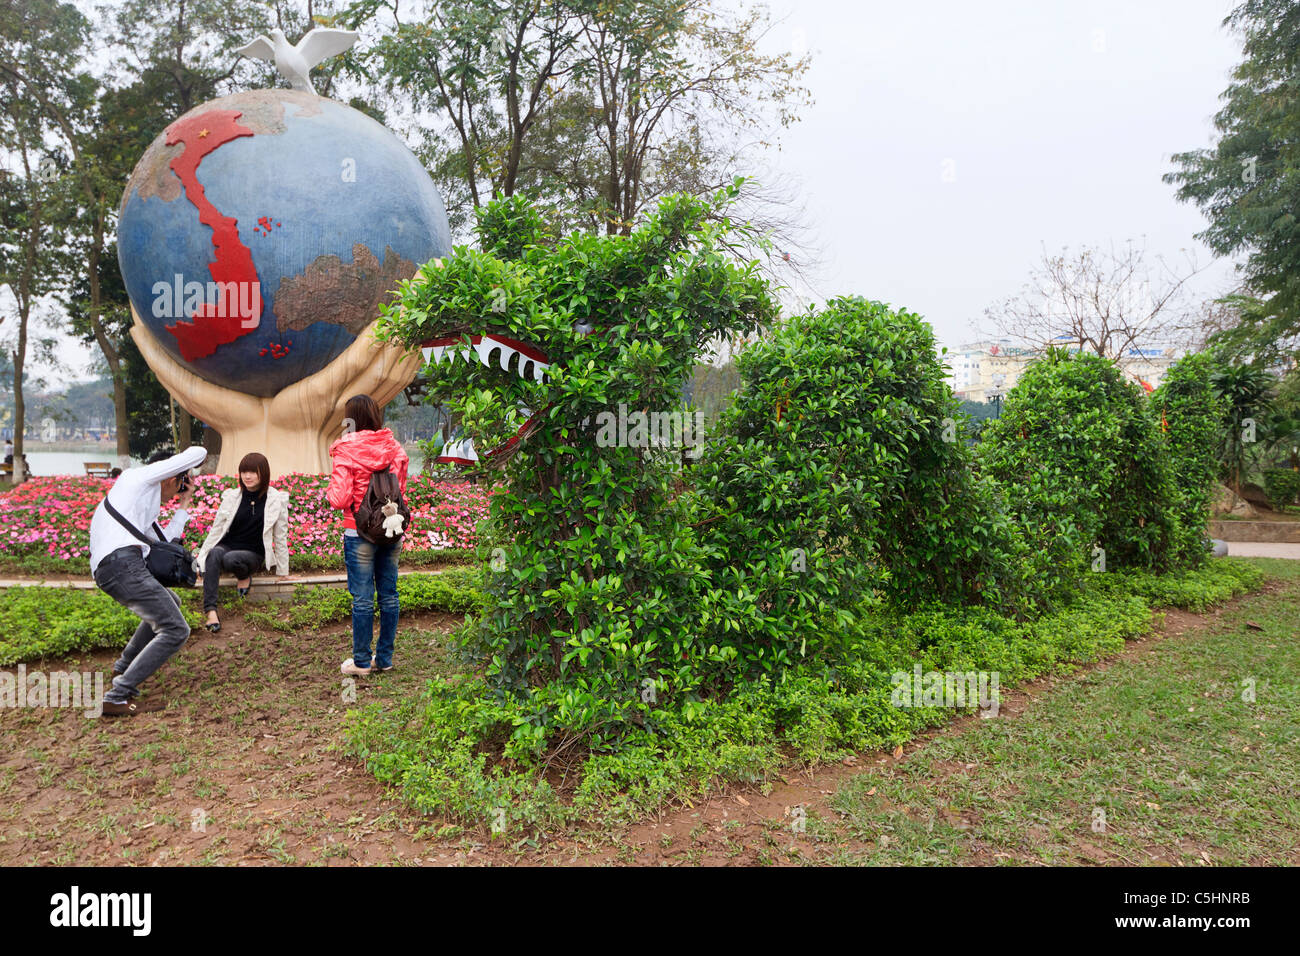 Dragon topiary sits by globe of the world in front of Hoan Kiem Lake in the historical center of Hanoi, Vietnam. - Stock Image